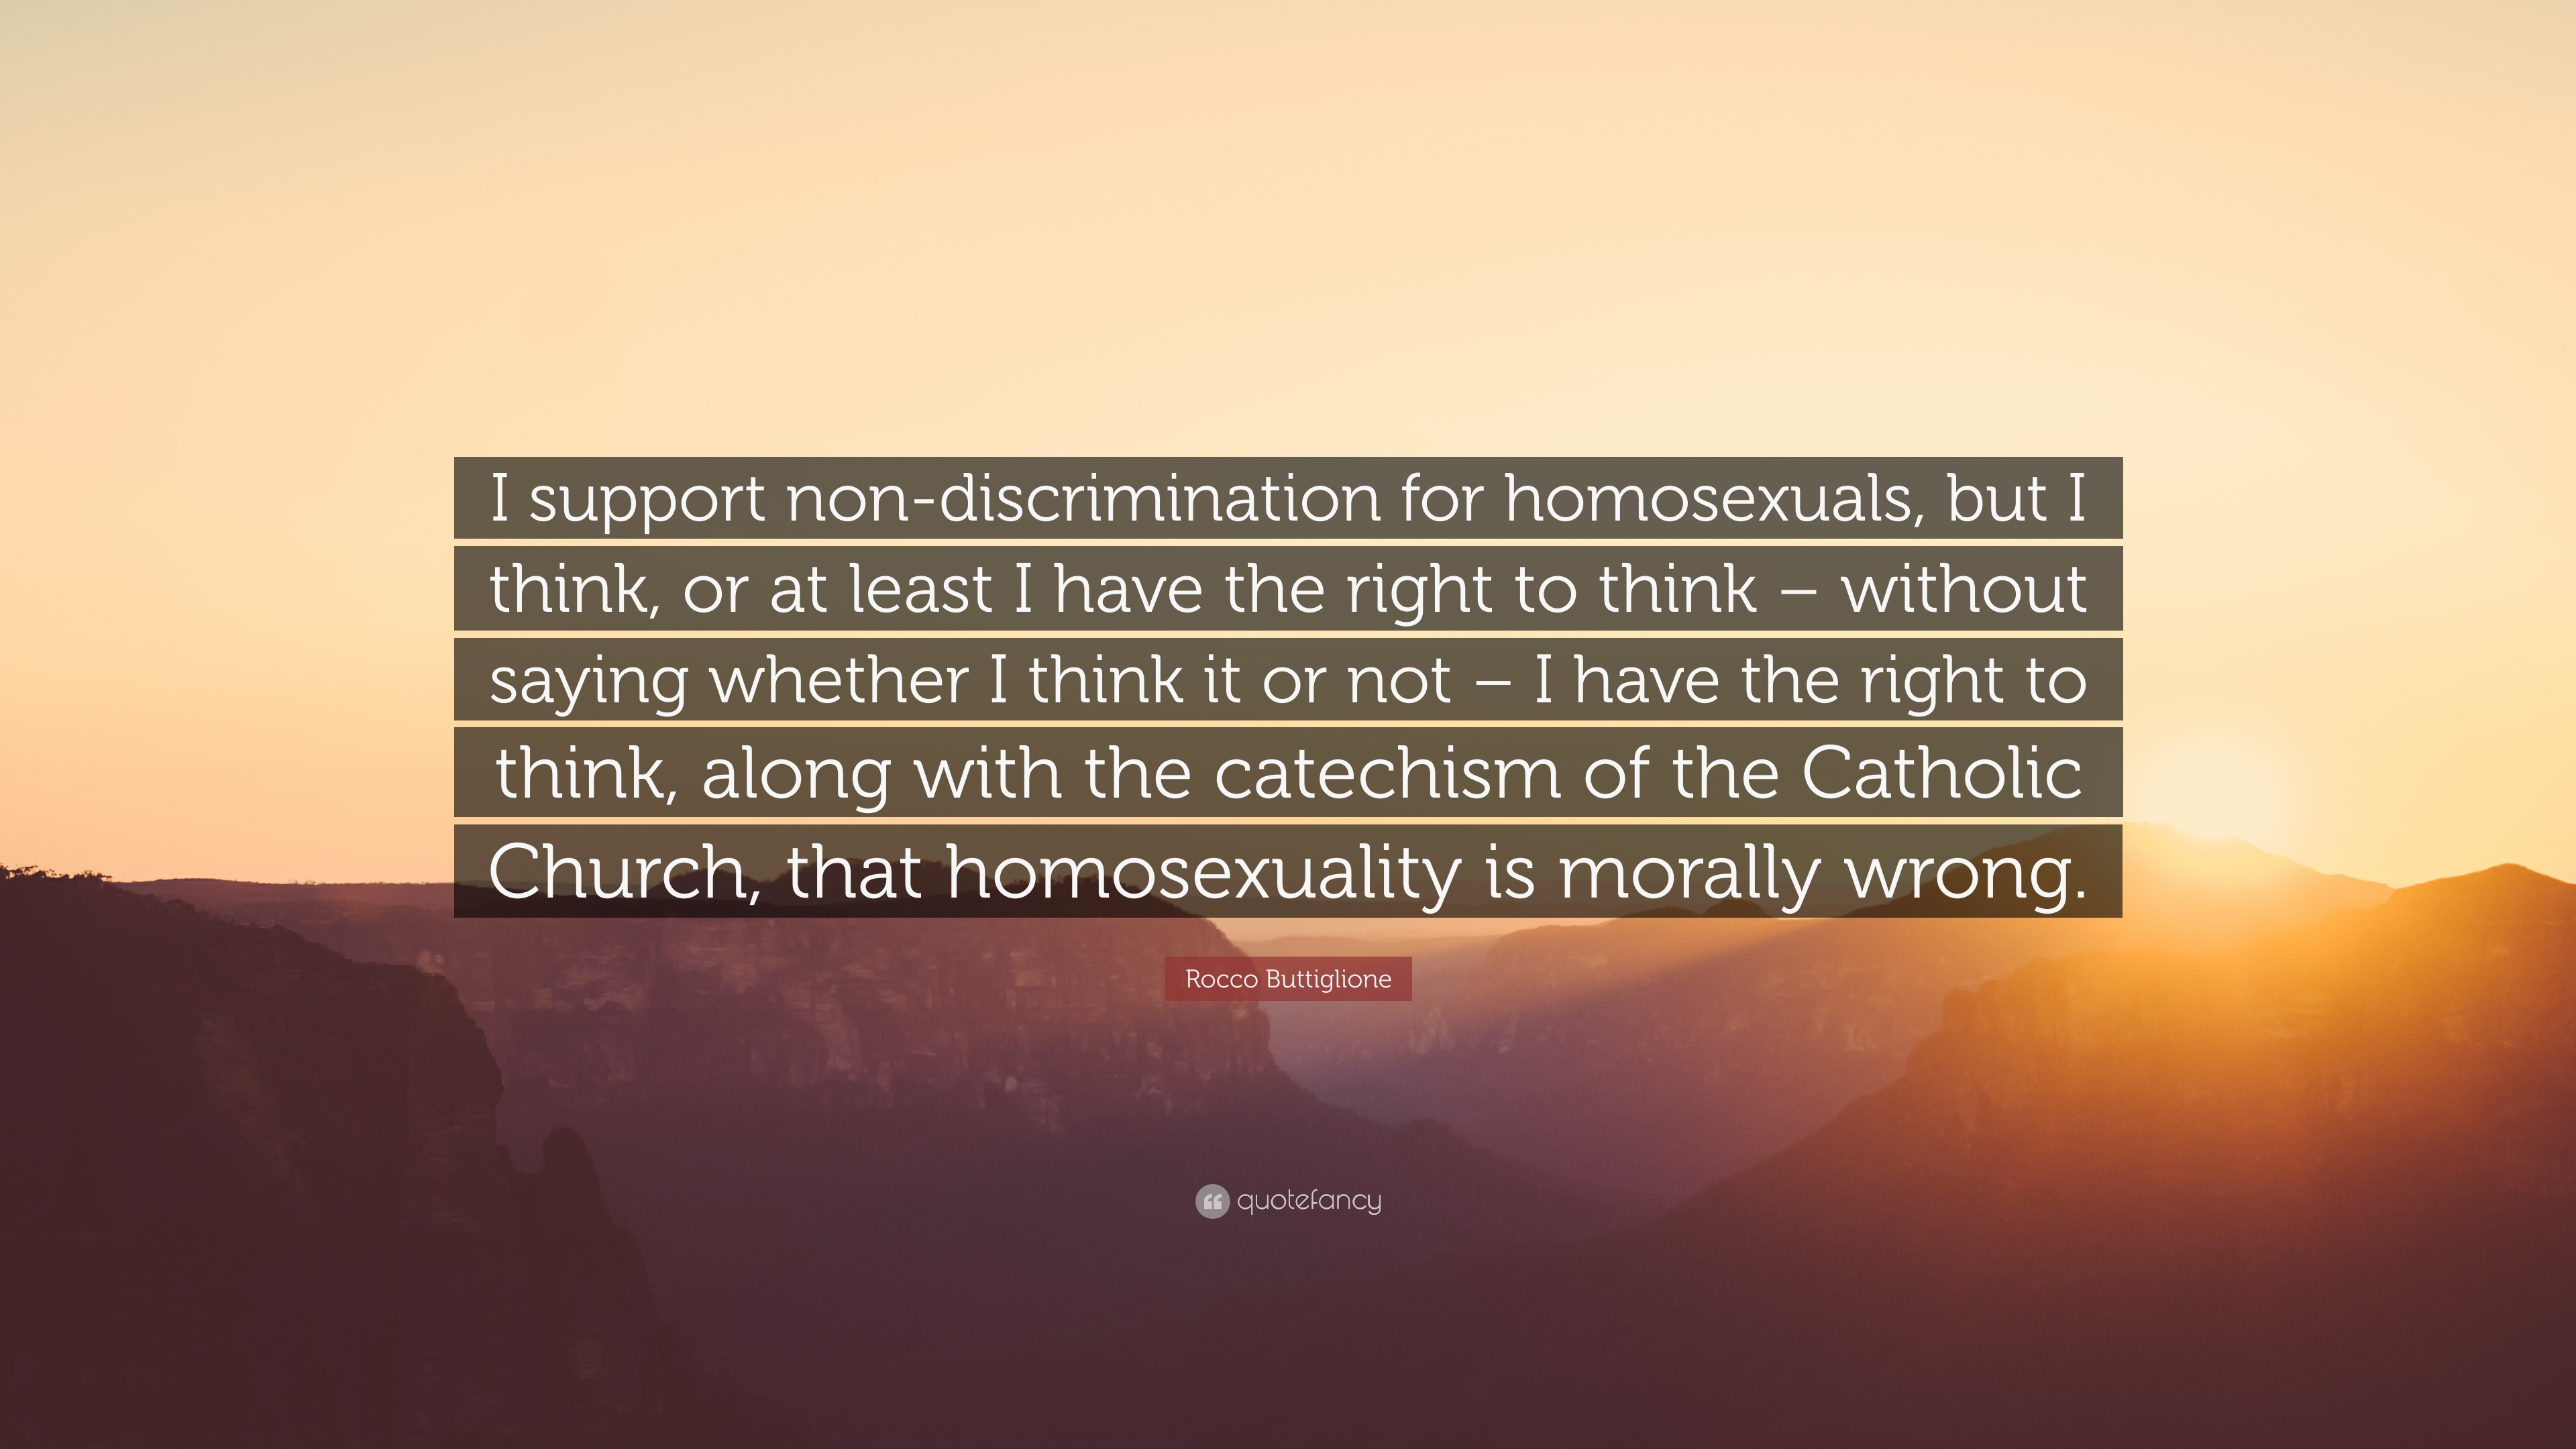 Catechism homosexuality quote